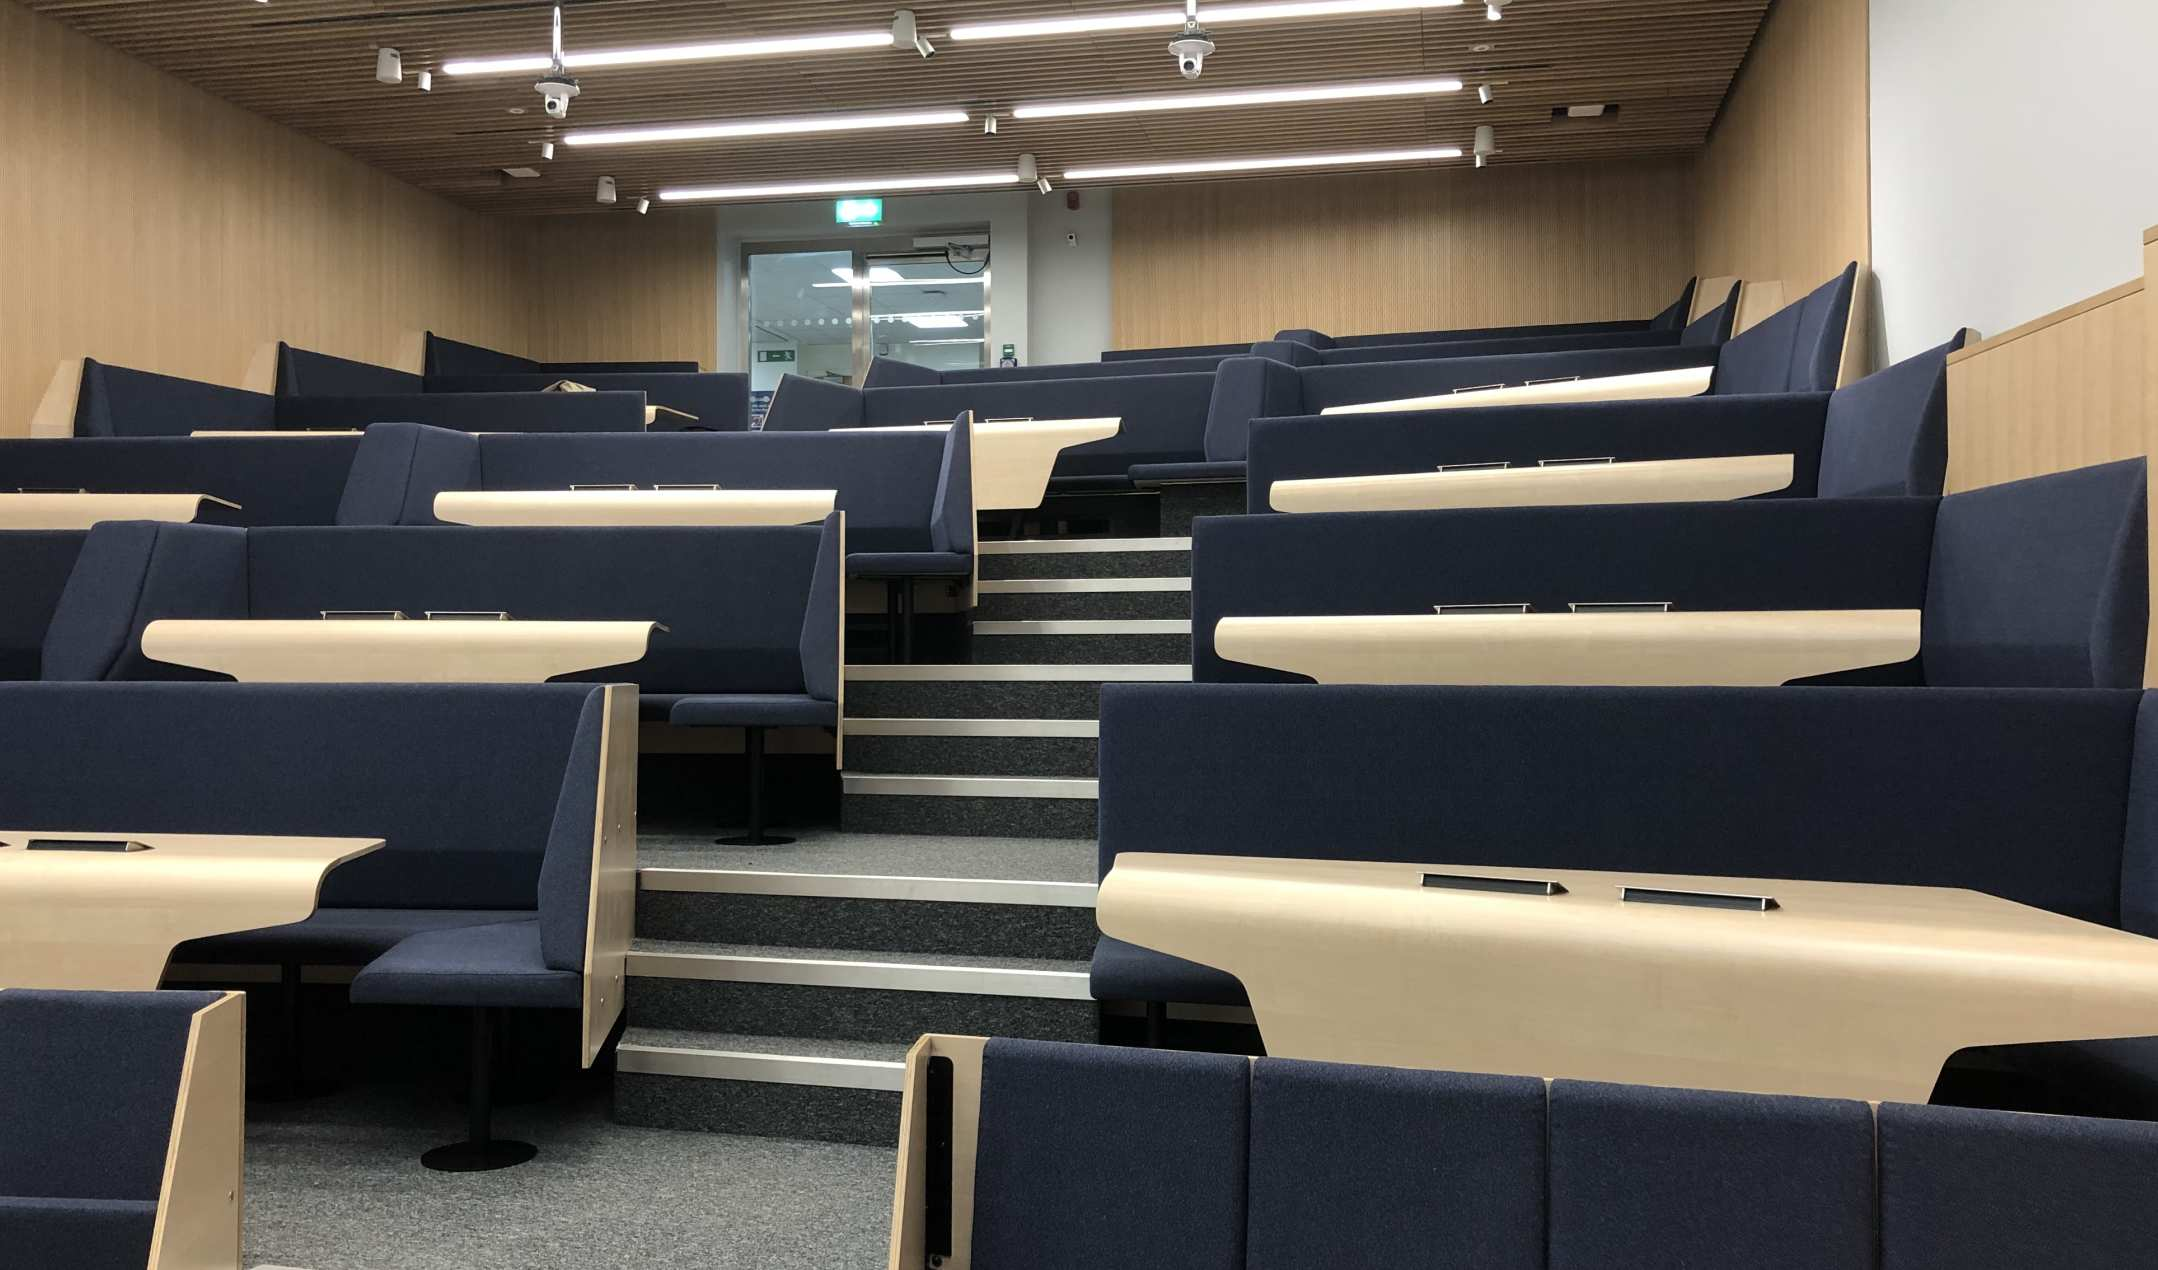 Blackett lecture theatre